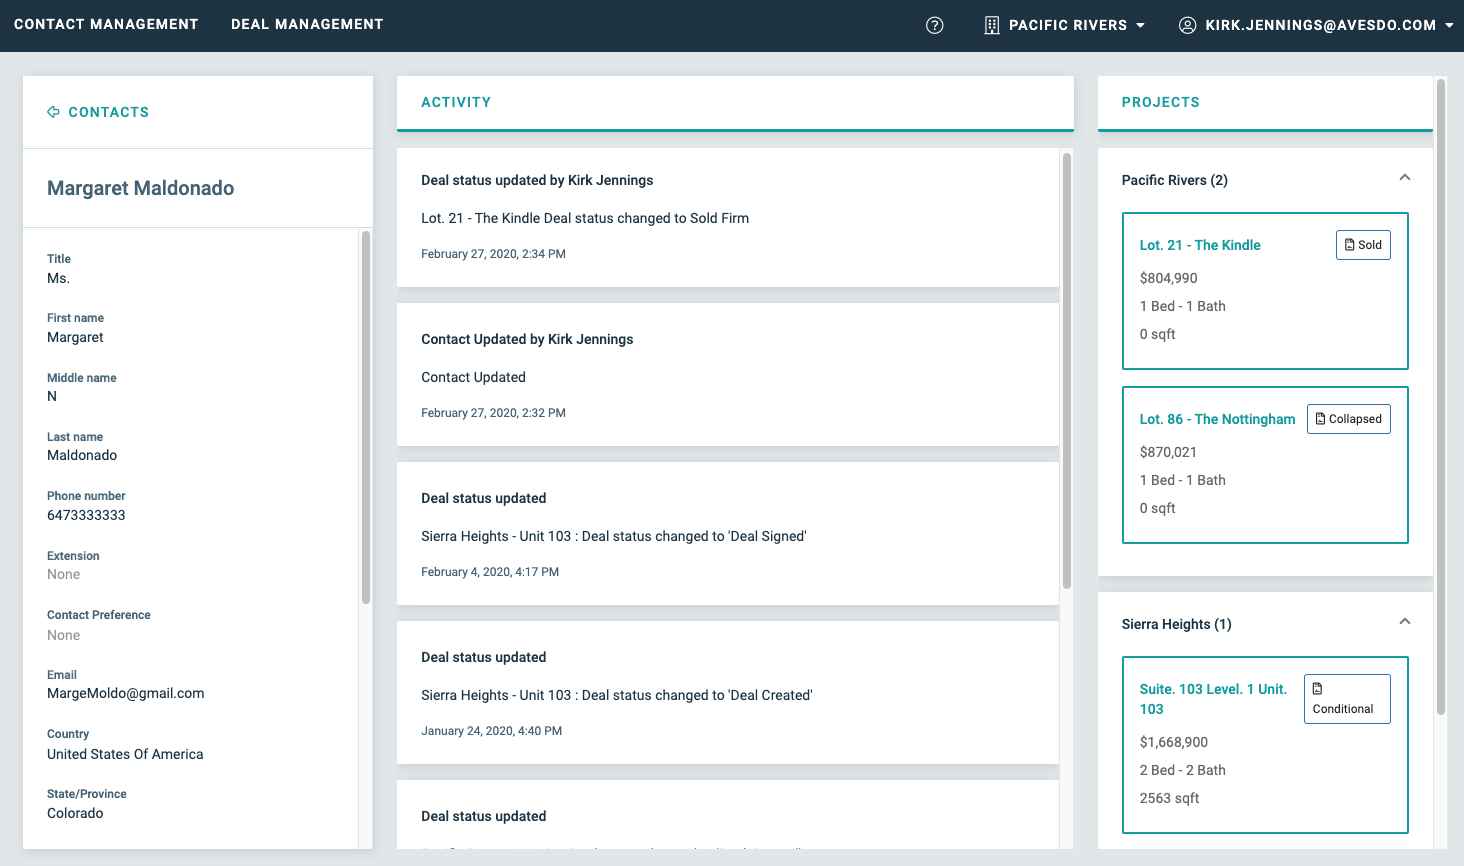 View of Document Management Dashboard